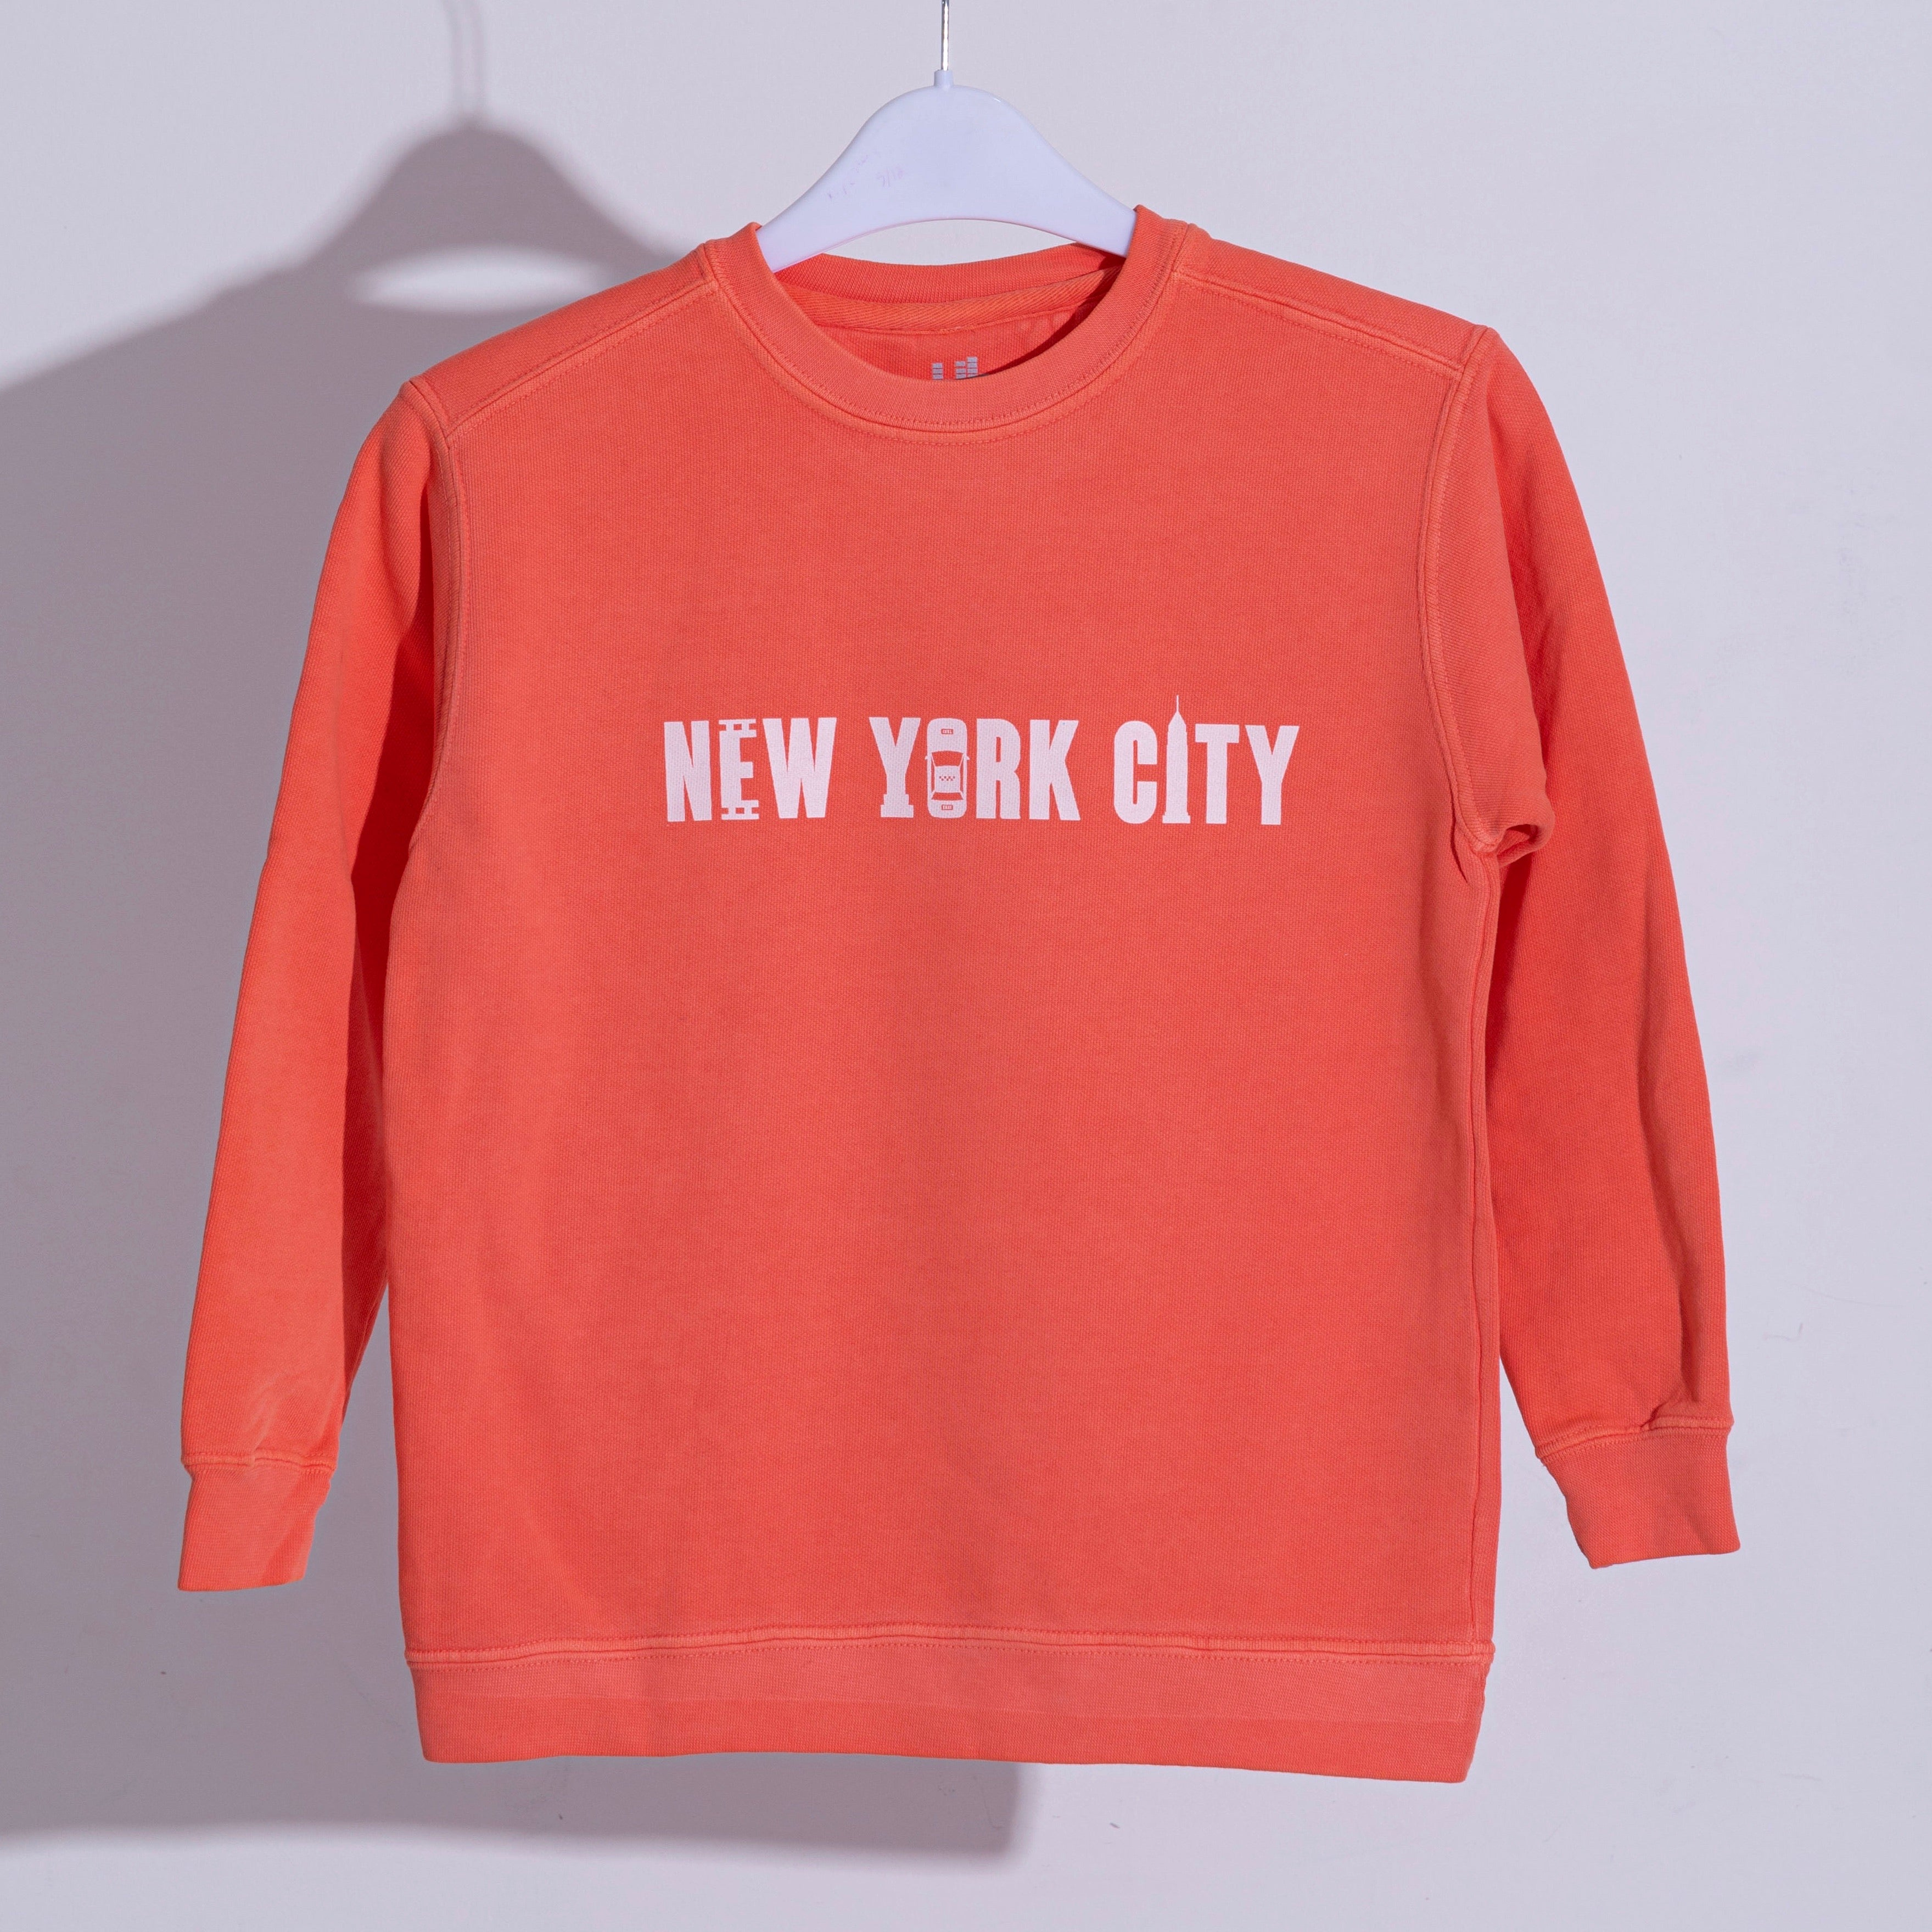 New York City Classic Youth Sweatshirt